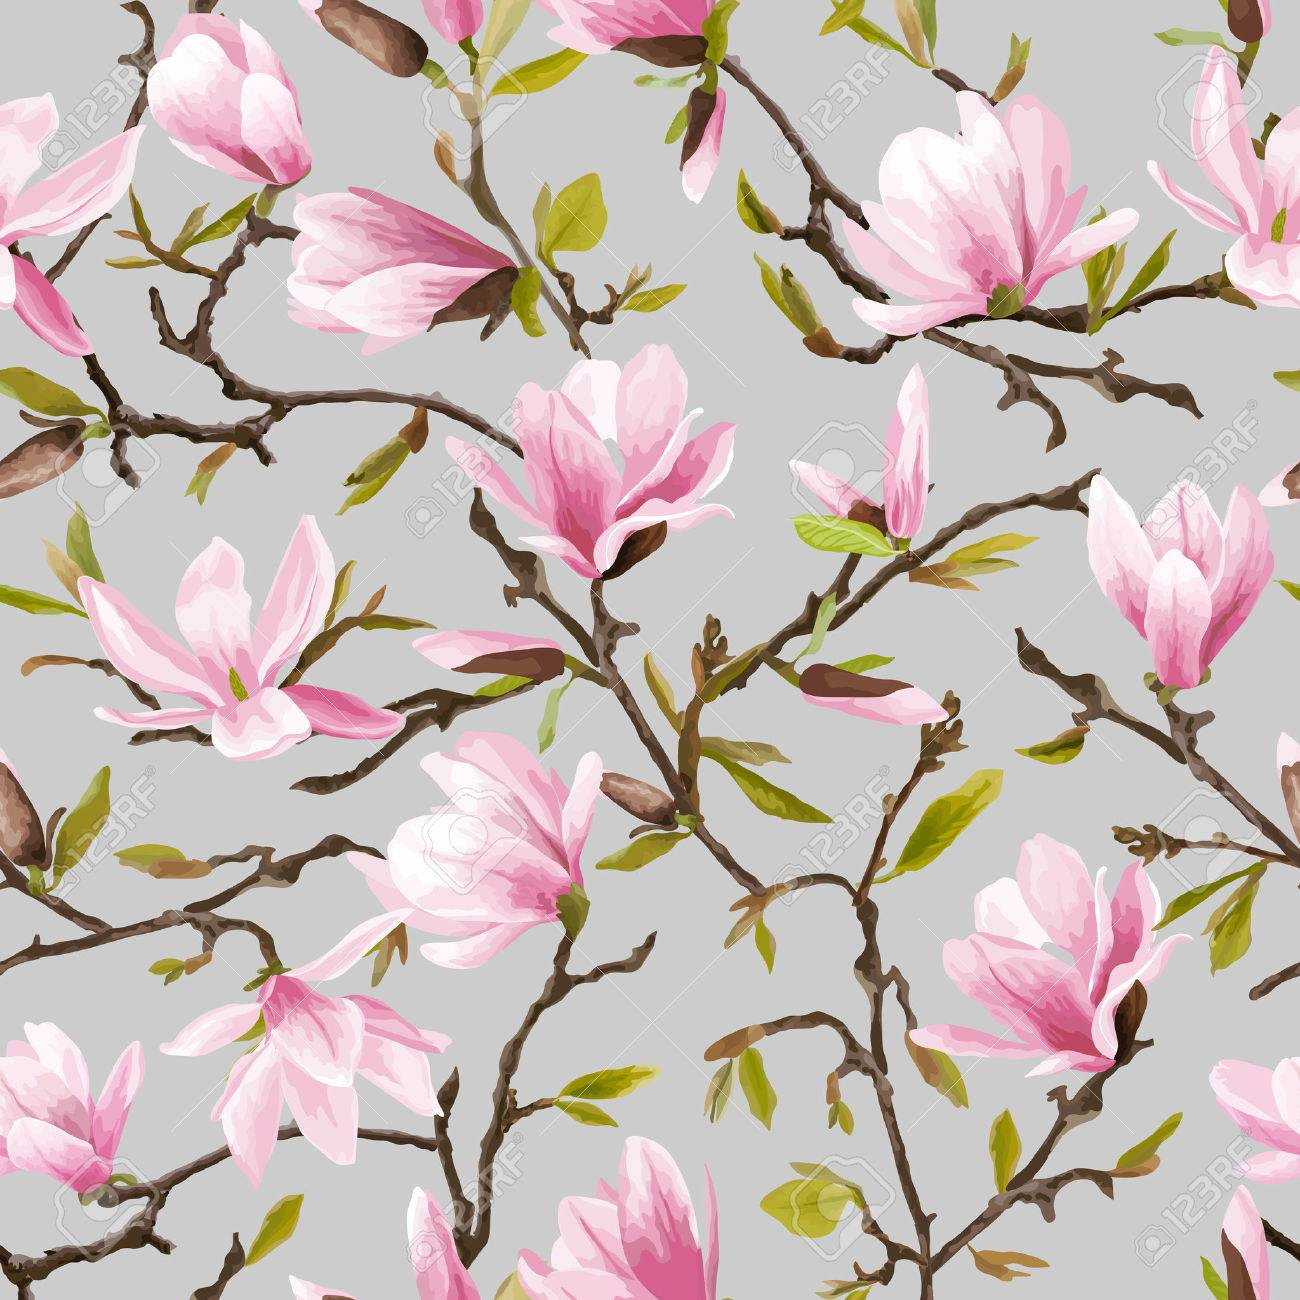 Seamless Floral Pattern. Magnolia Flowers and Leaves Background. Exotic Flower. Vector - 56530638